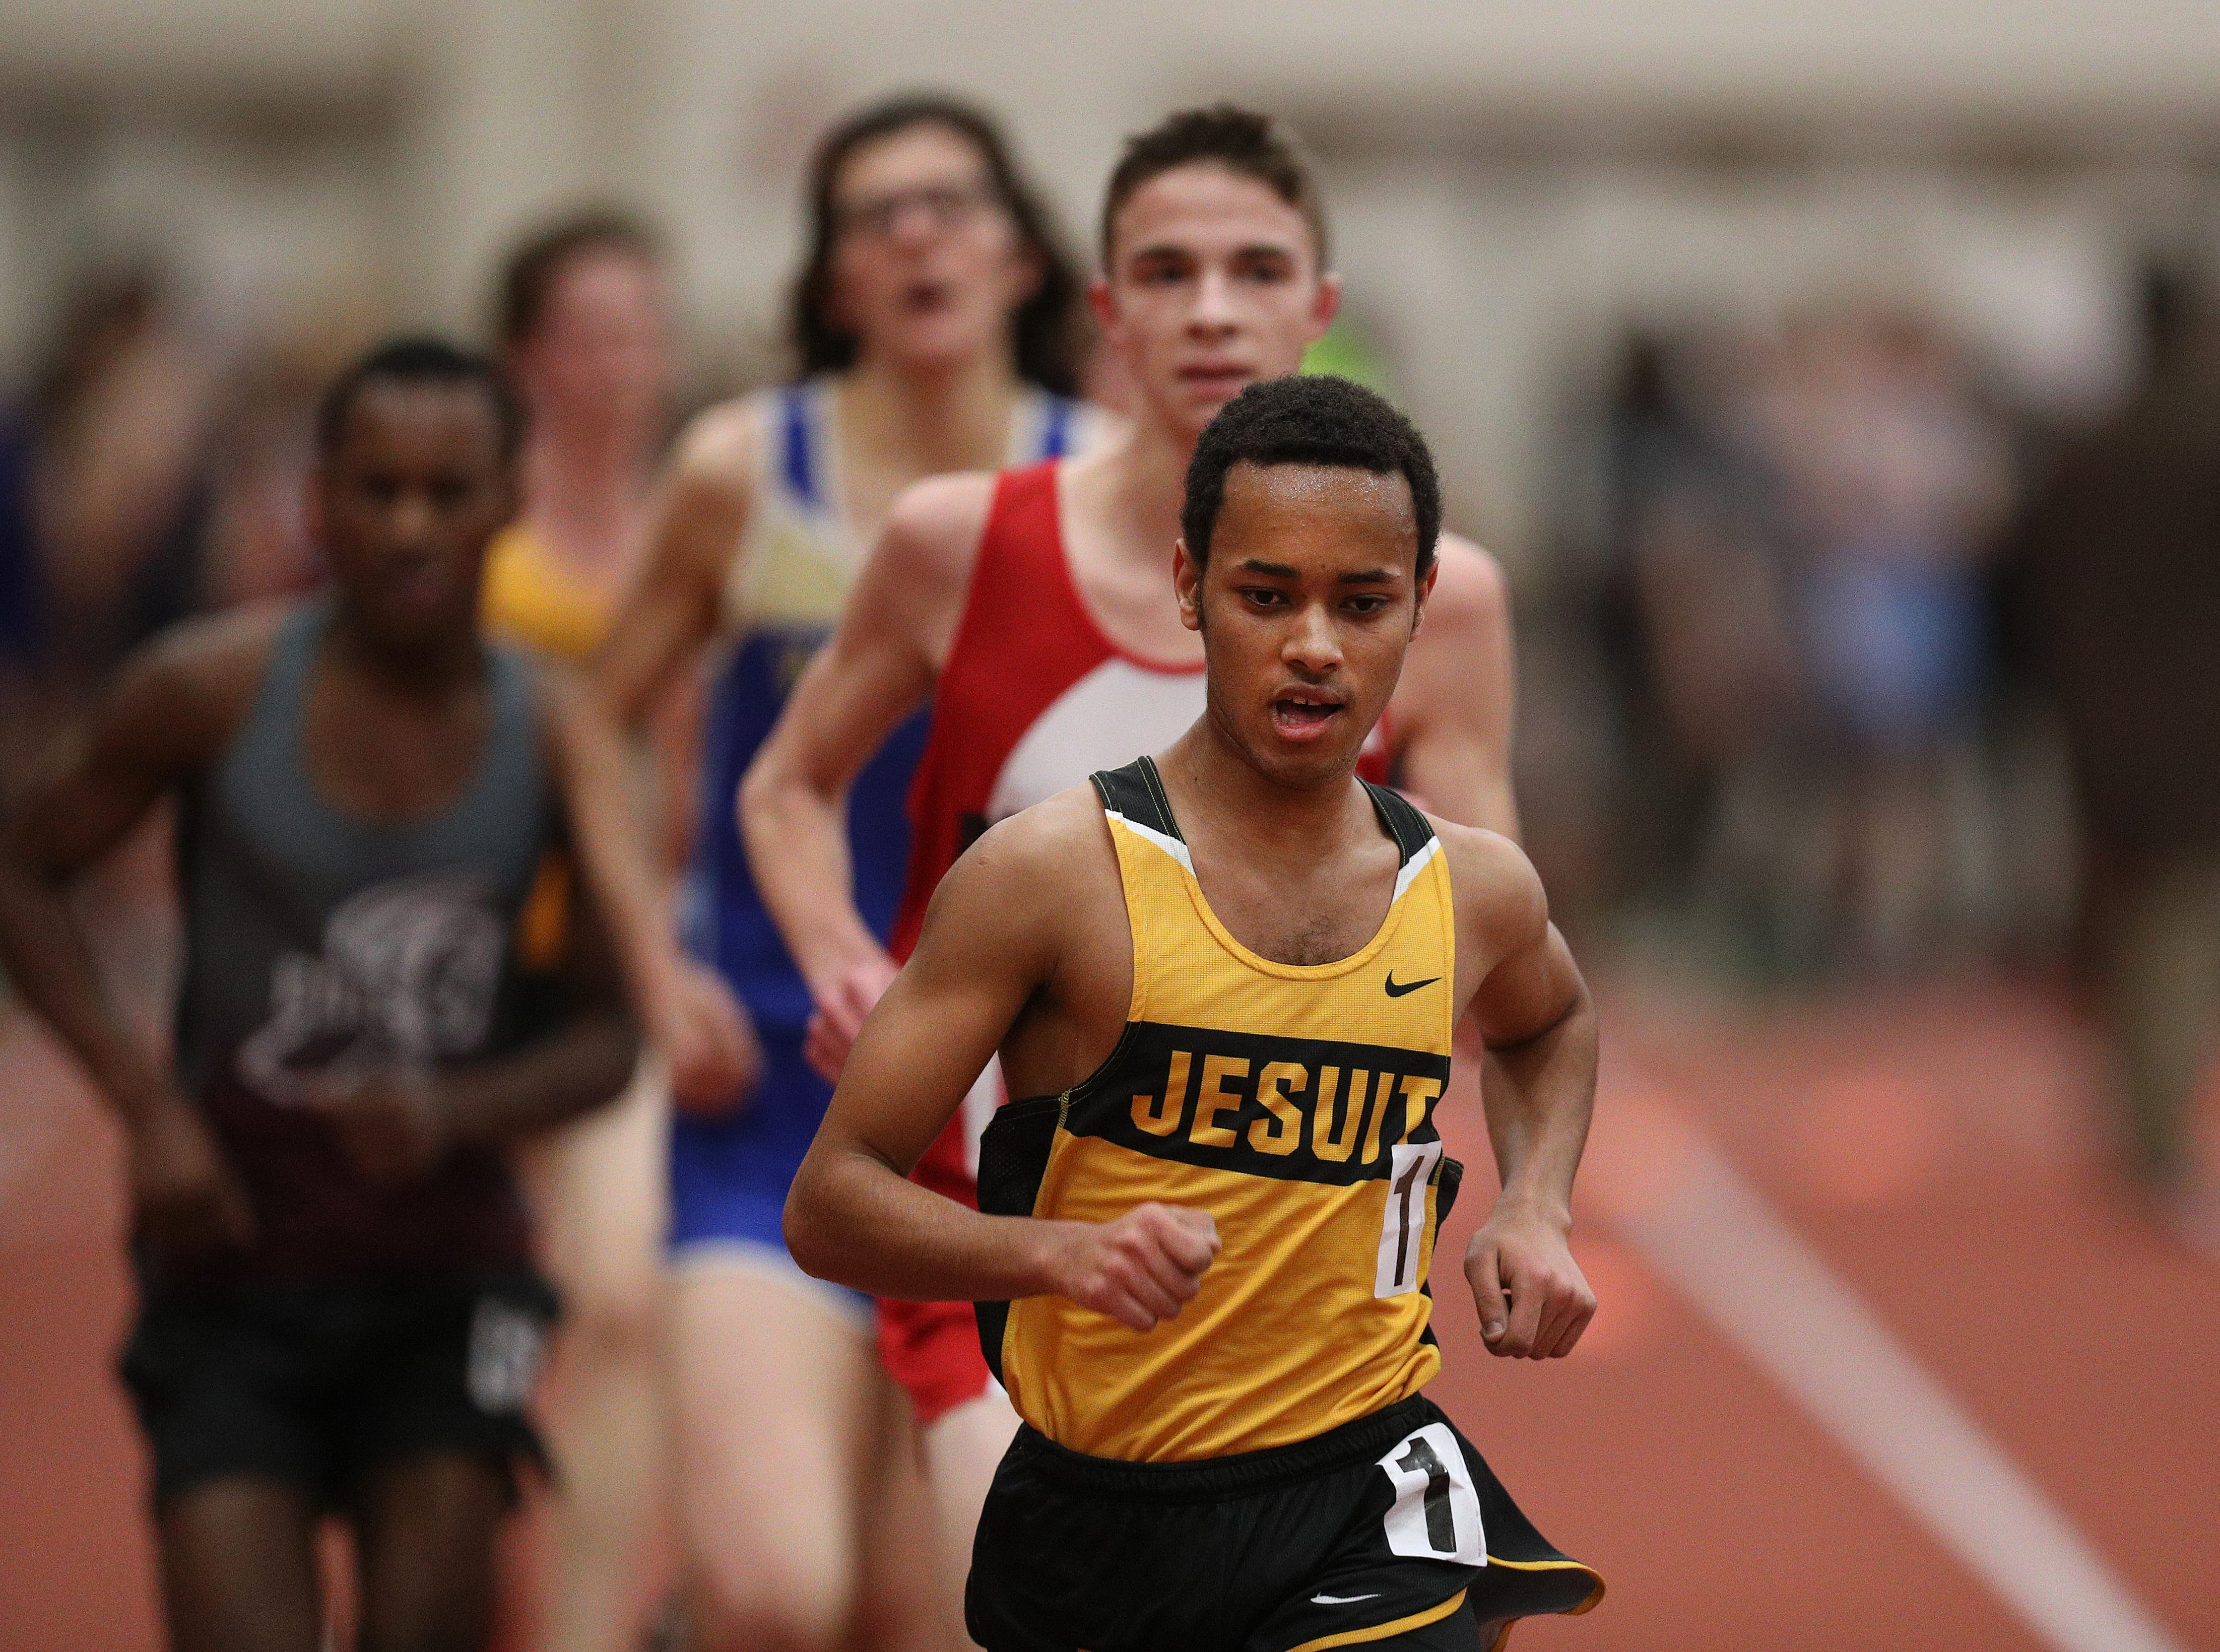 McQuaid's Able Hagos moves to the front of the pack to win the Class A 3200 meter run.